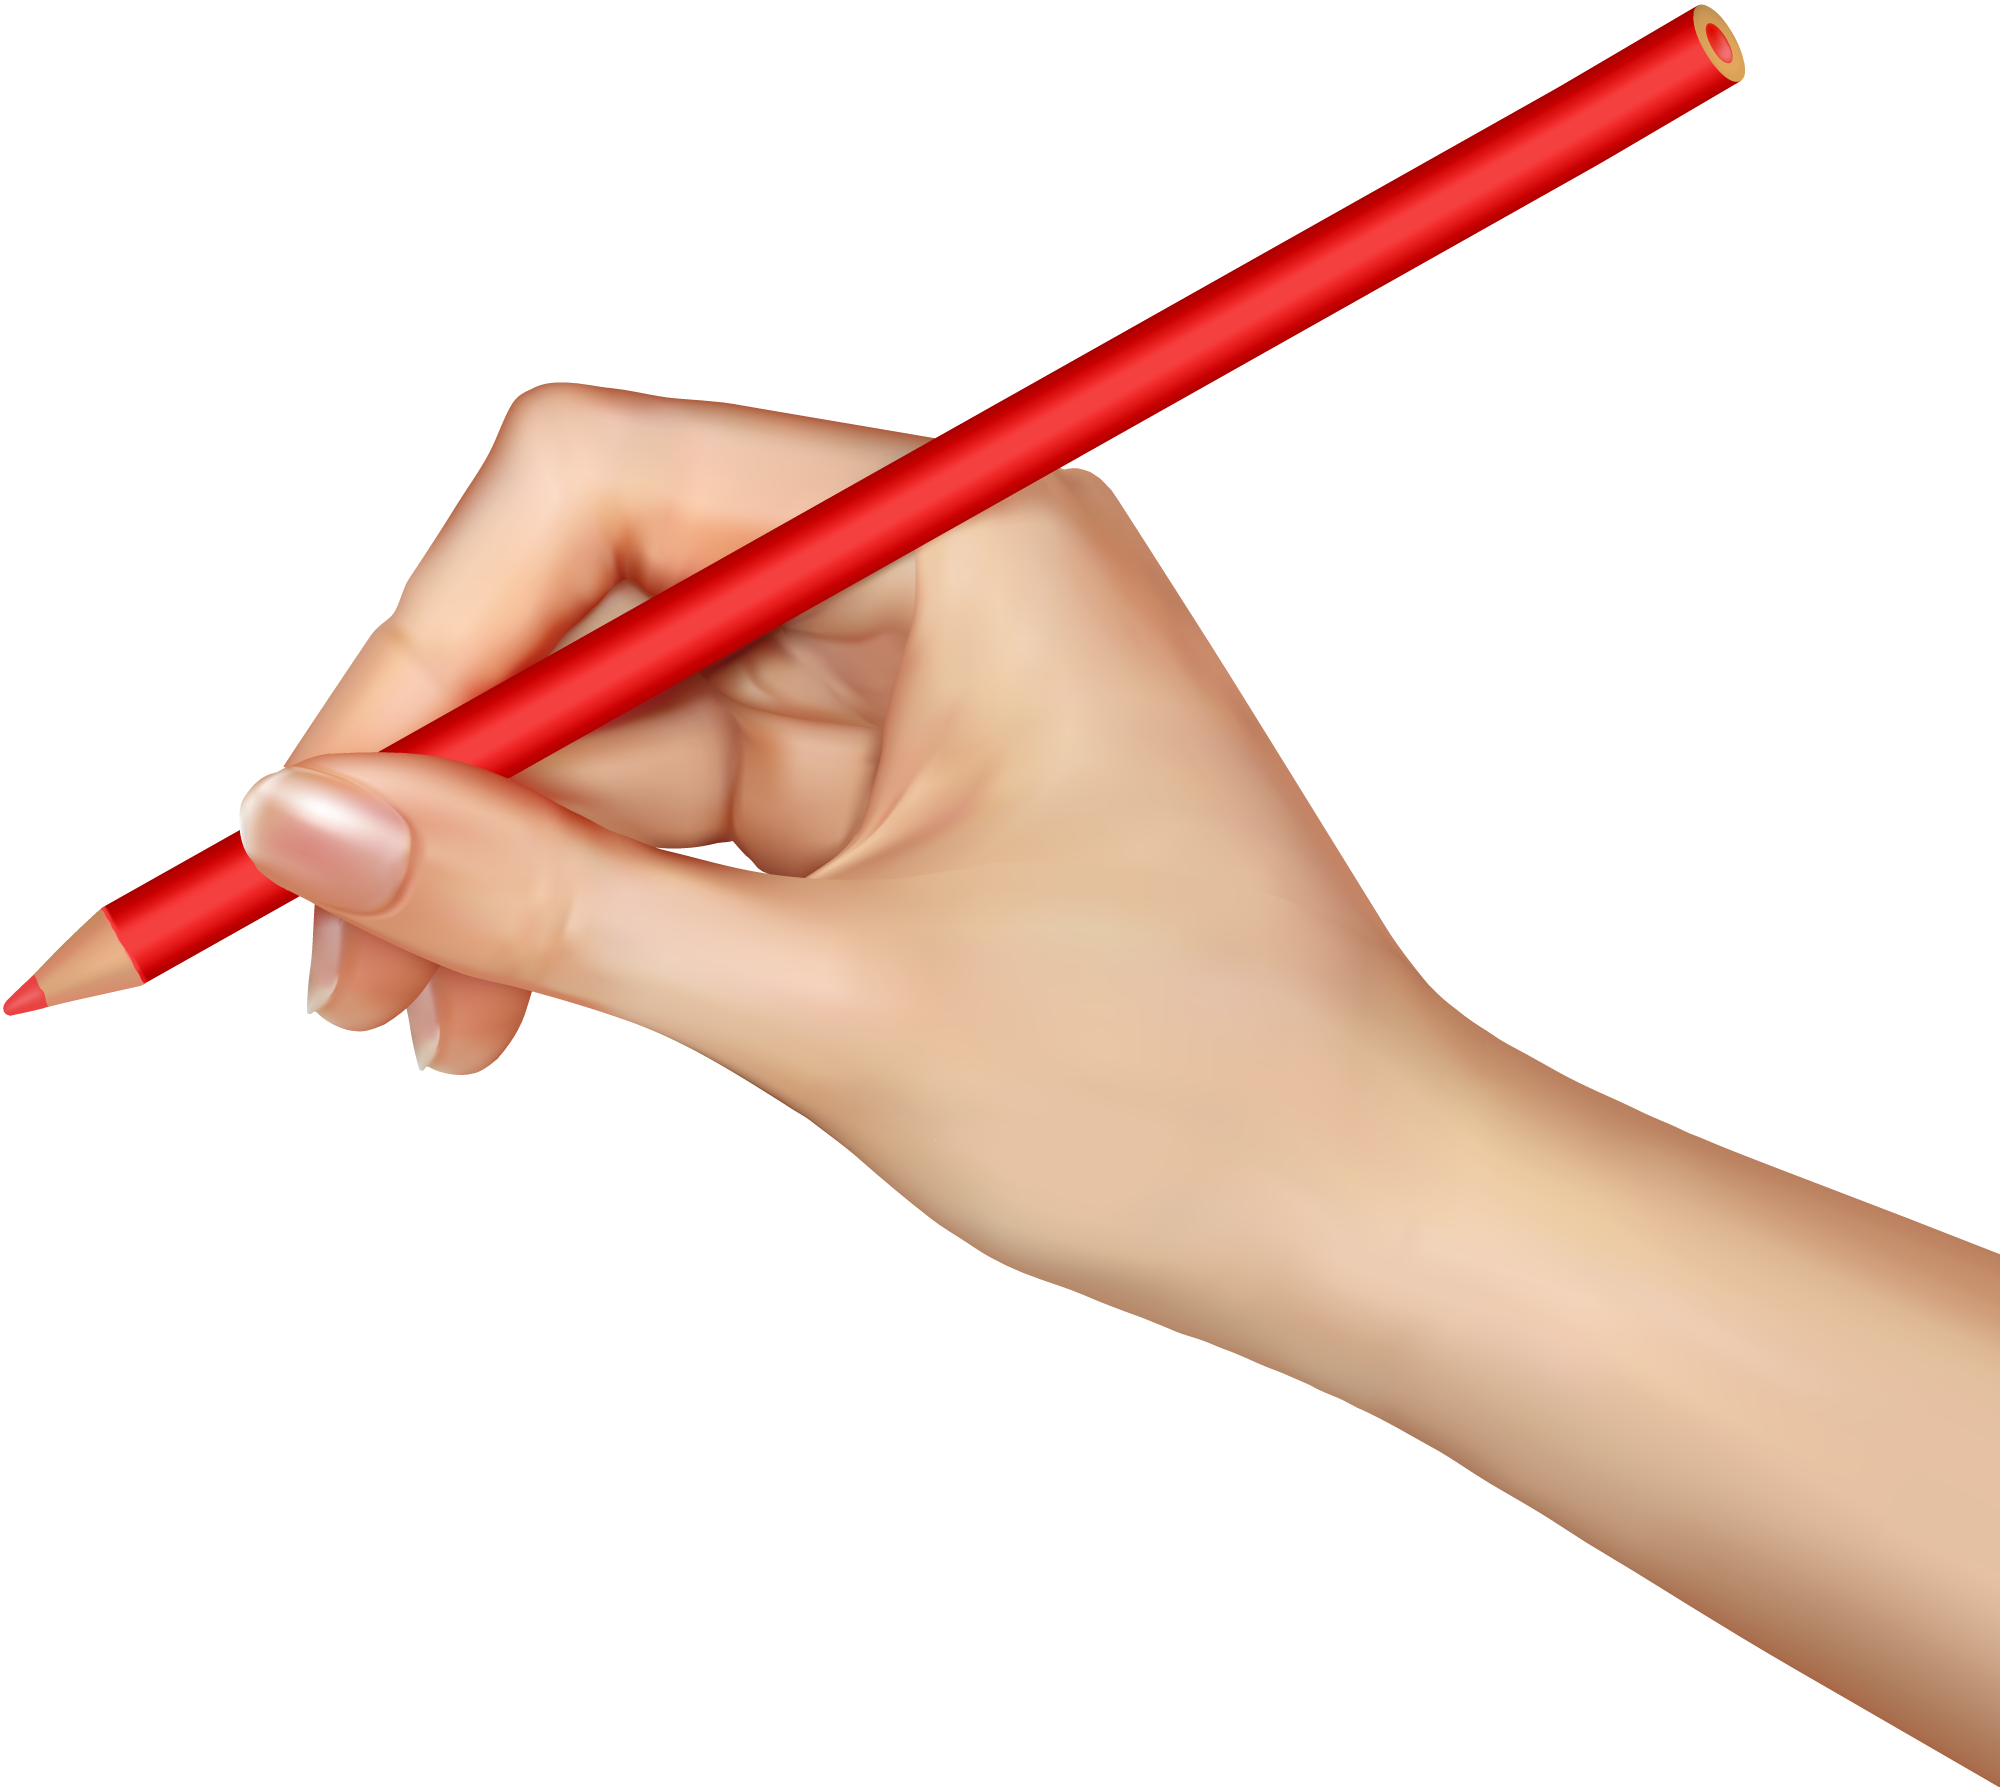 Pencil in hand, hands PNG, hand image free